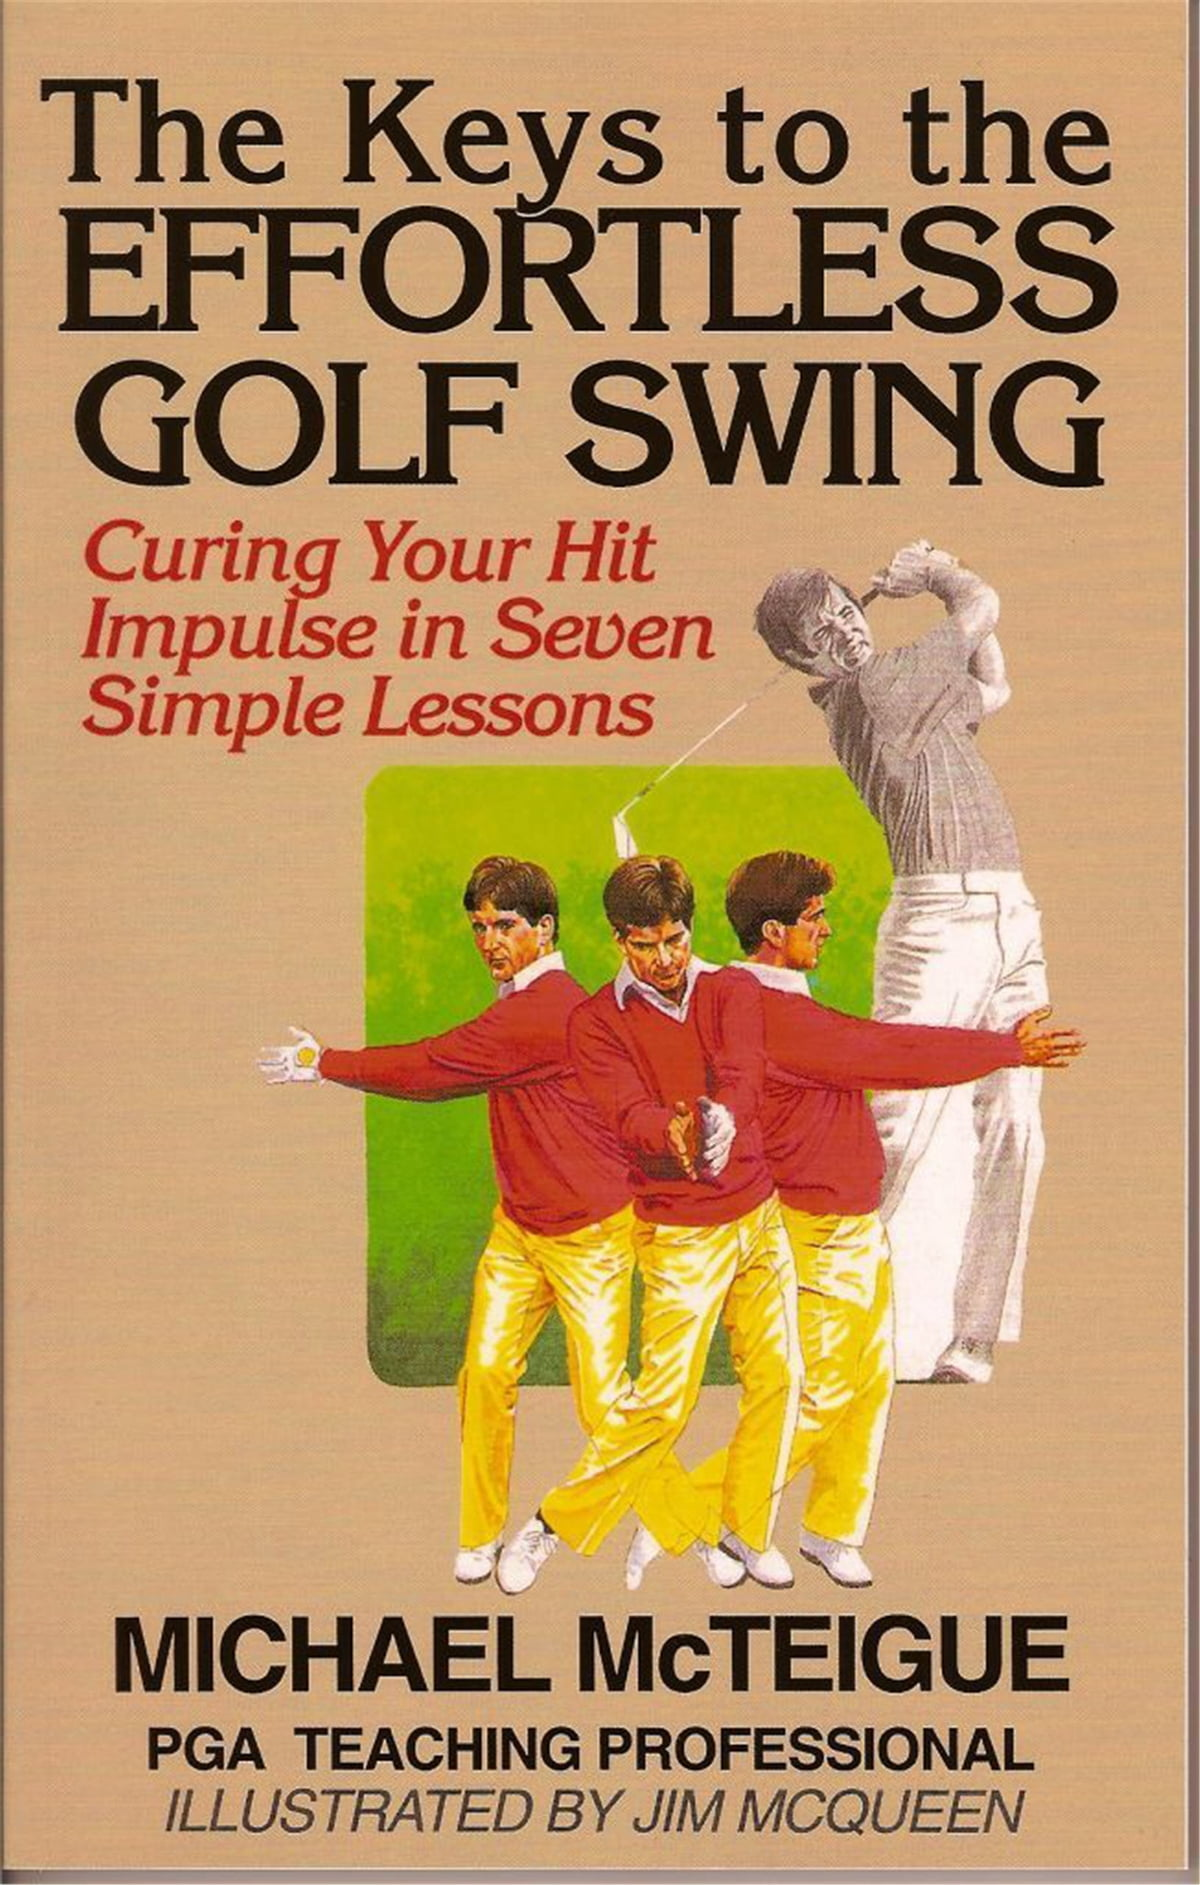 The Keys to the Effortless Golf Swing: Curing Your Hit Impulse in Seven  Simple Lessons eBook di Michael McTeigue - 9781465930361   Rakuten Kobo